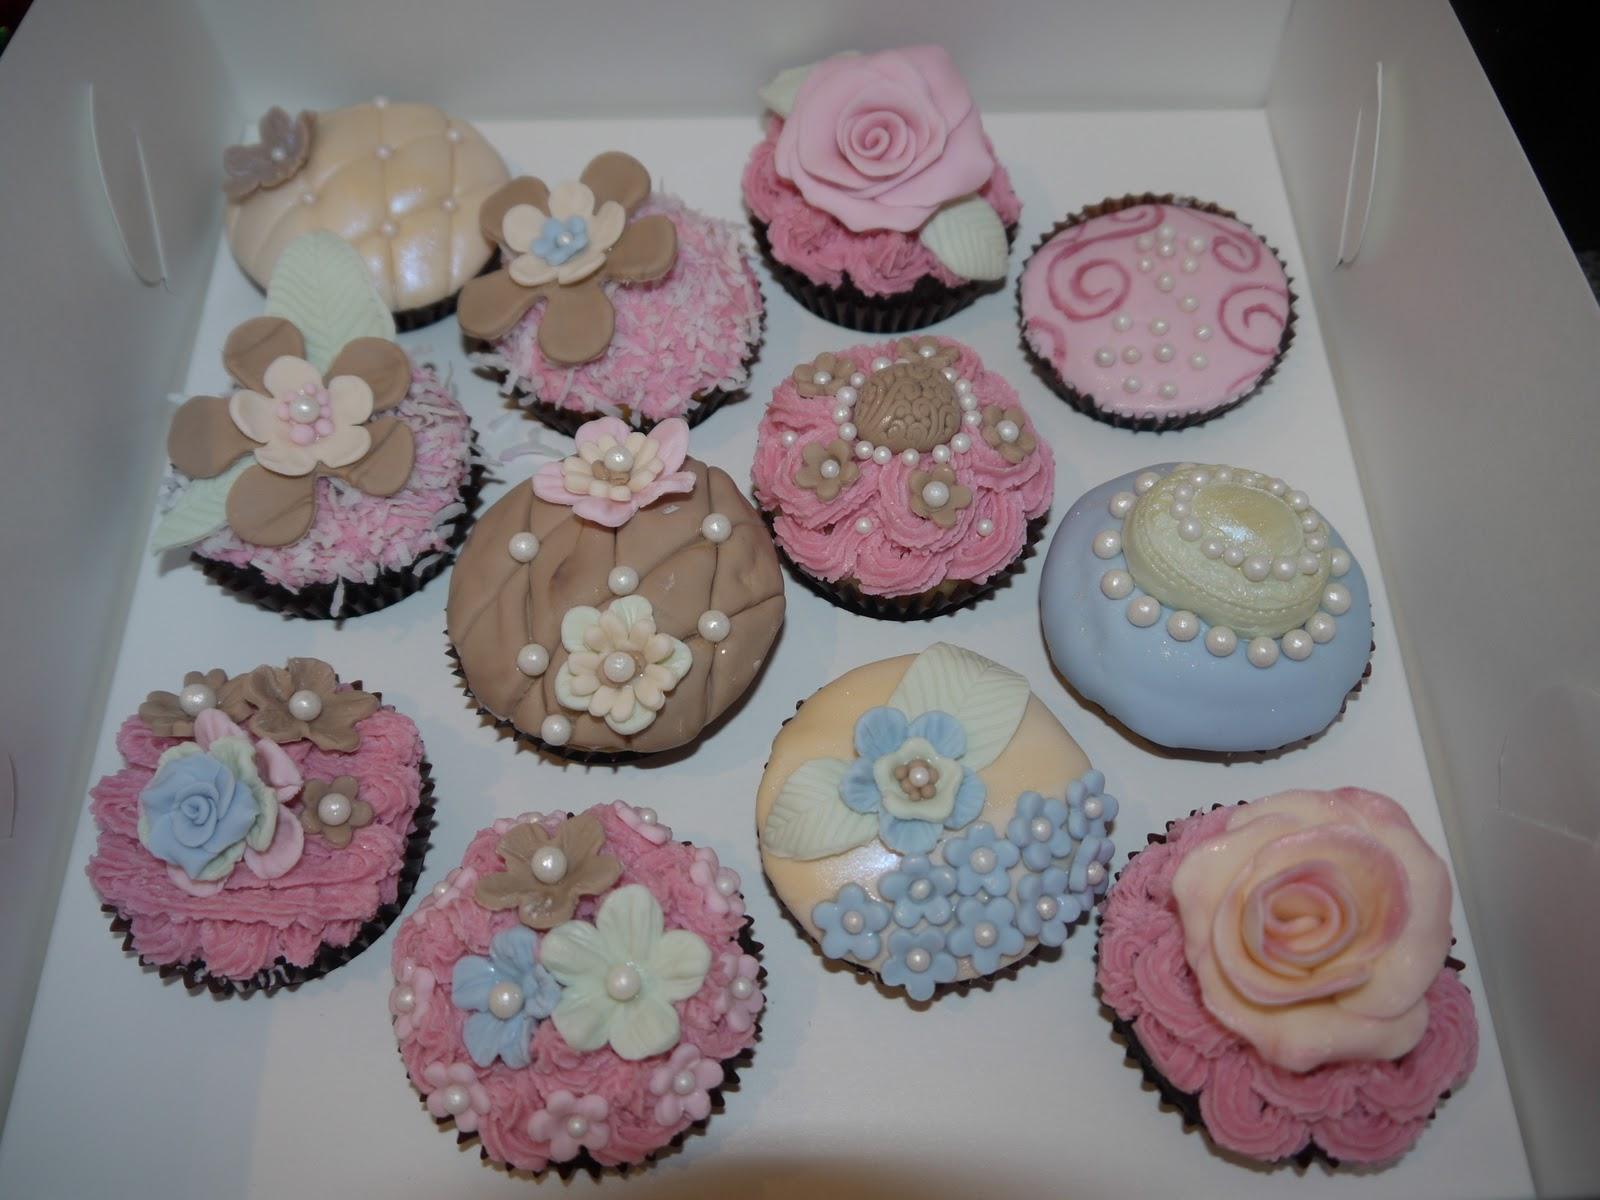 Cake Decorating Central Castle Hill : Sugar on Top: High Tea Cupcakes - Shabby Chic